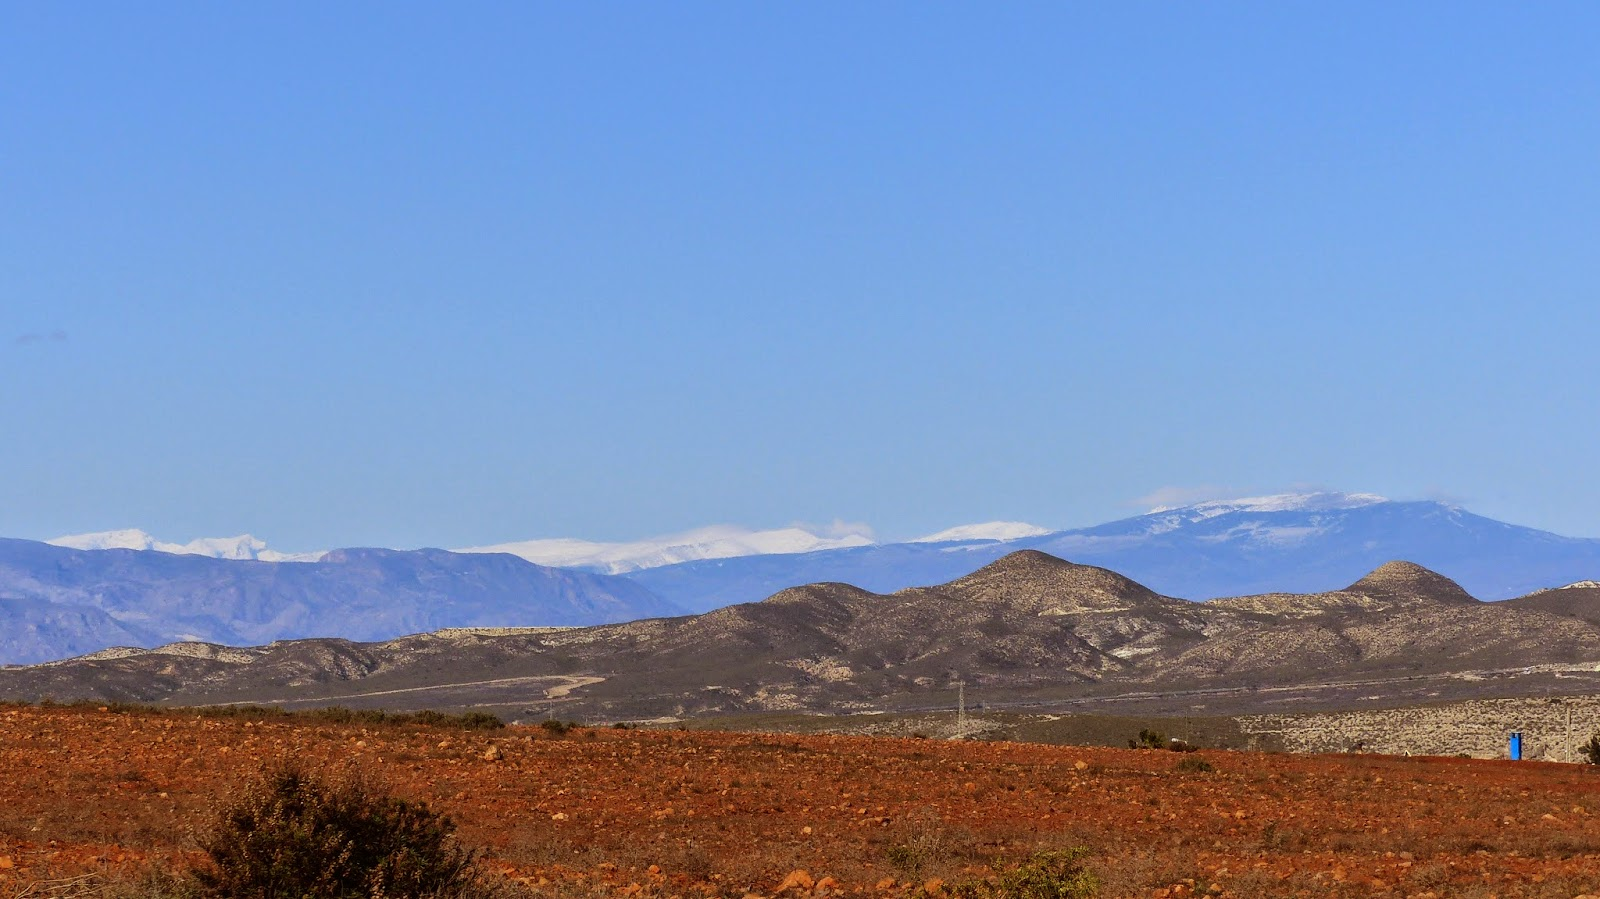 Distant peaks of the Sierra Nevada from Los Albaricoques